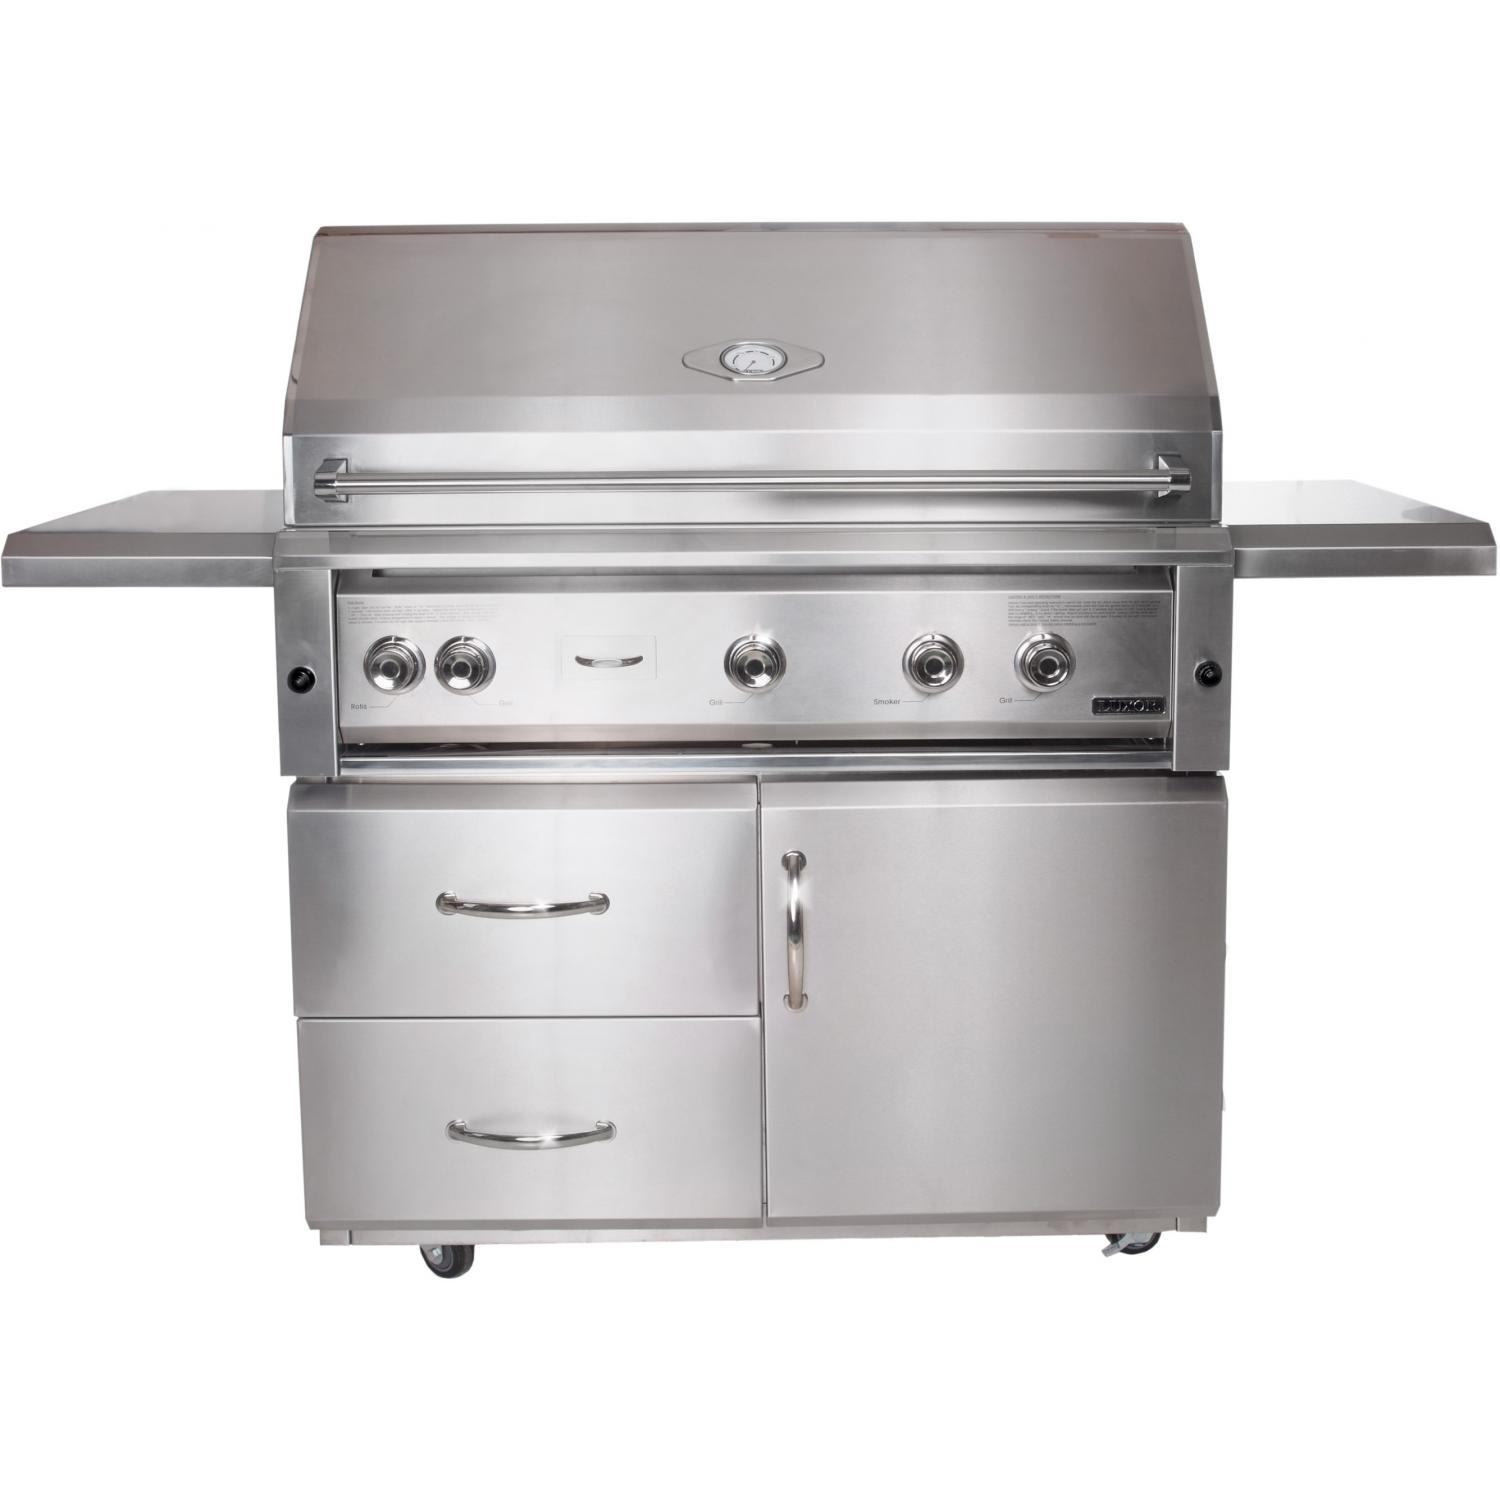 Luxor Gas Grills 42 Inch All Infrared Natural Gas Grill On Cart With Rotisserie AHT-42FR-NG